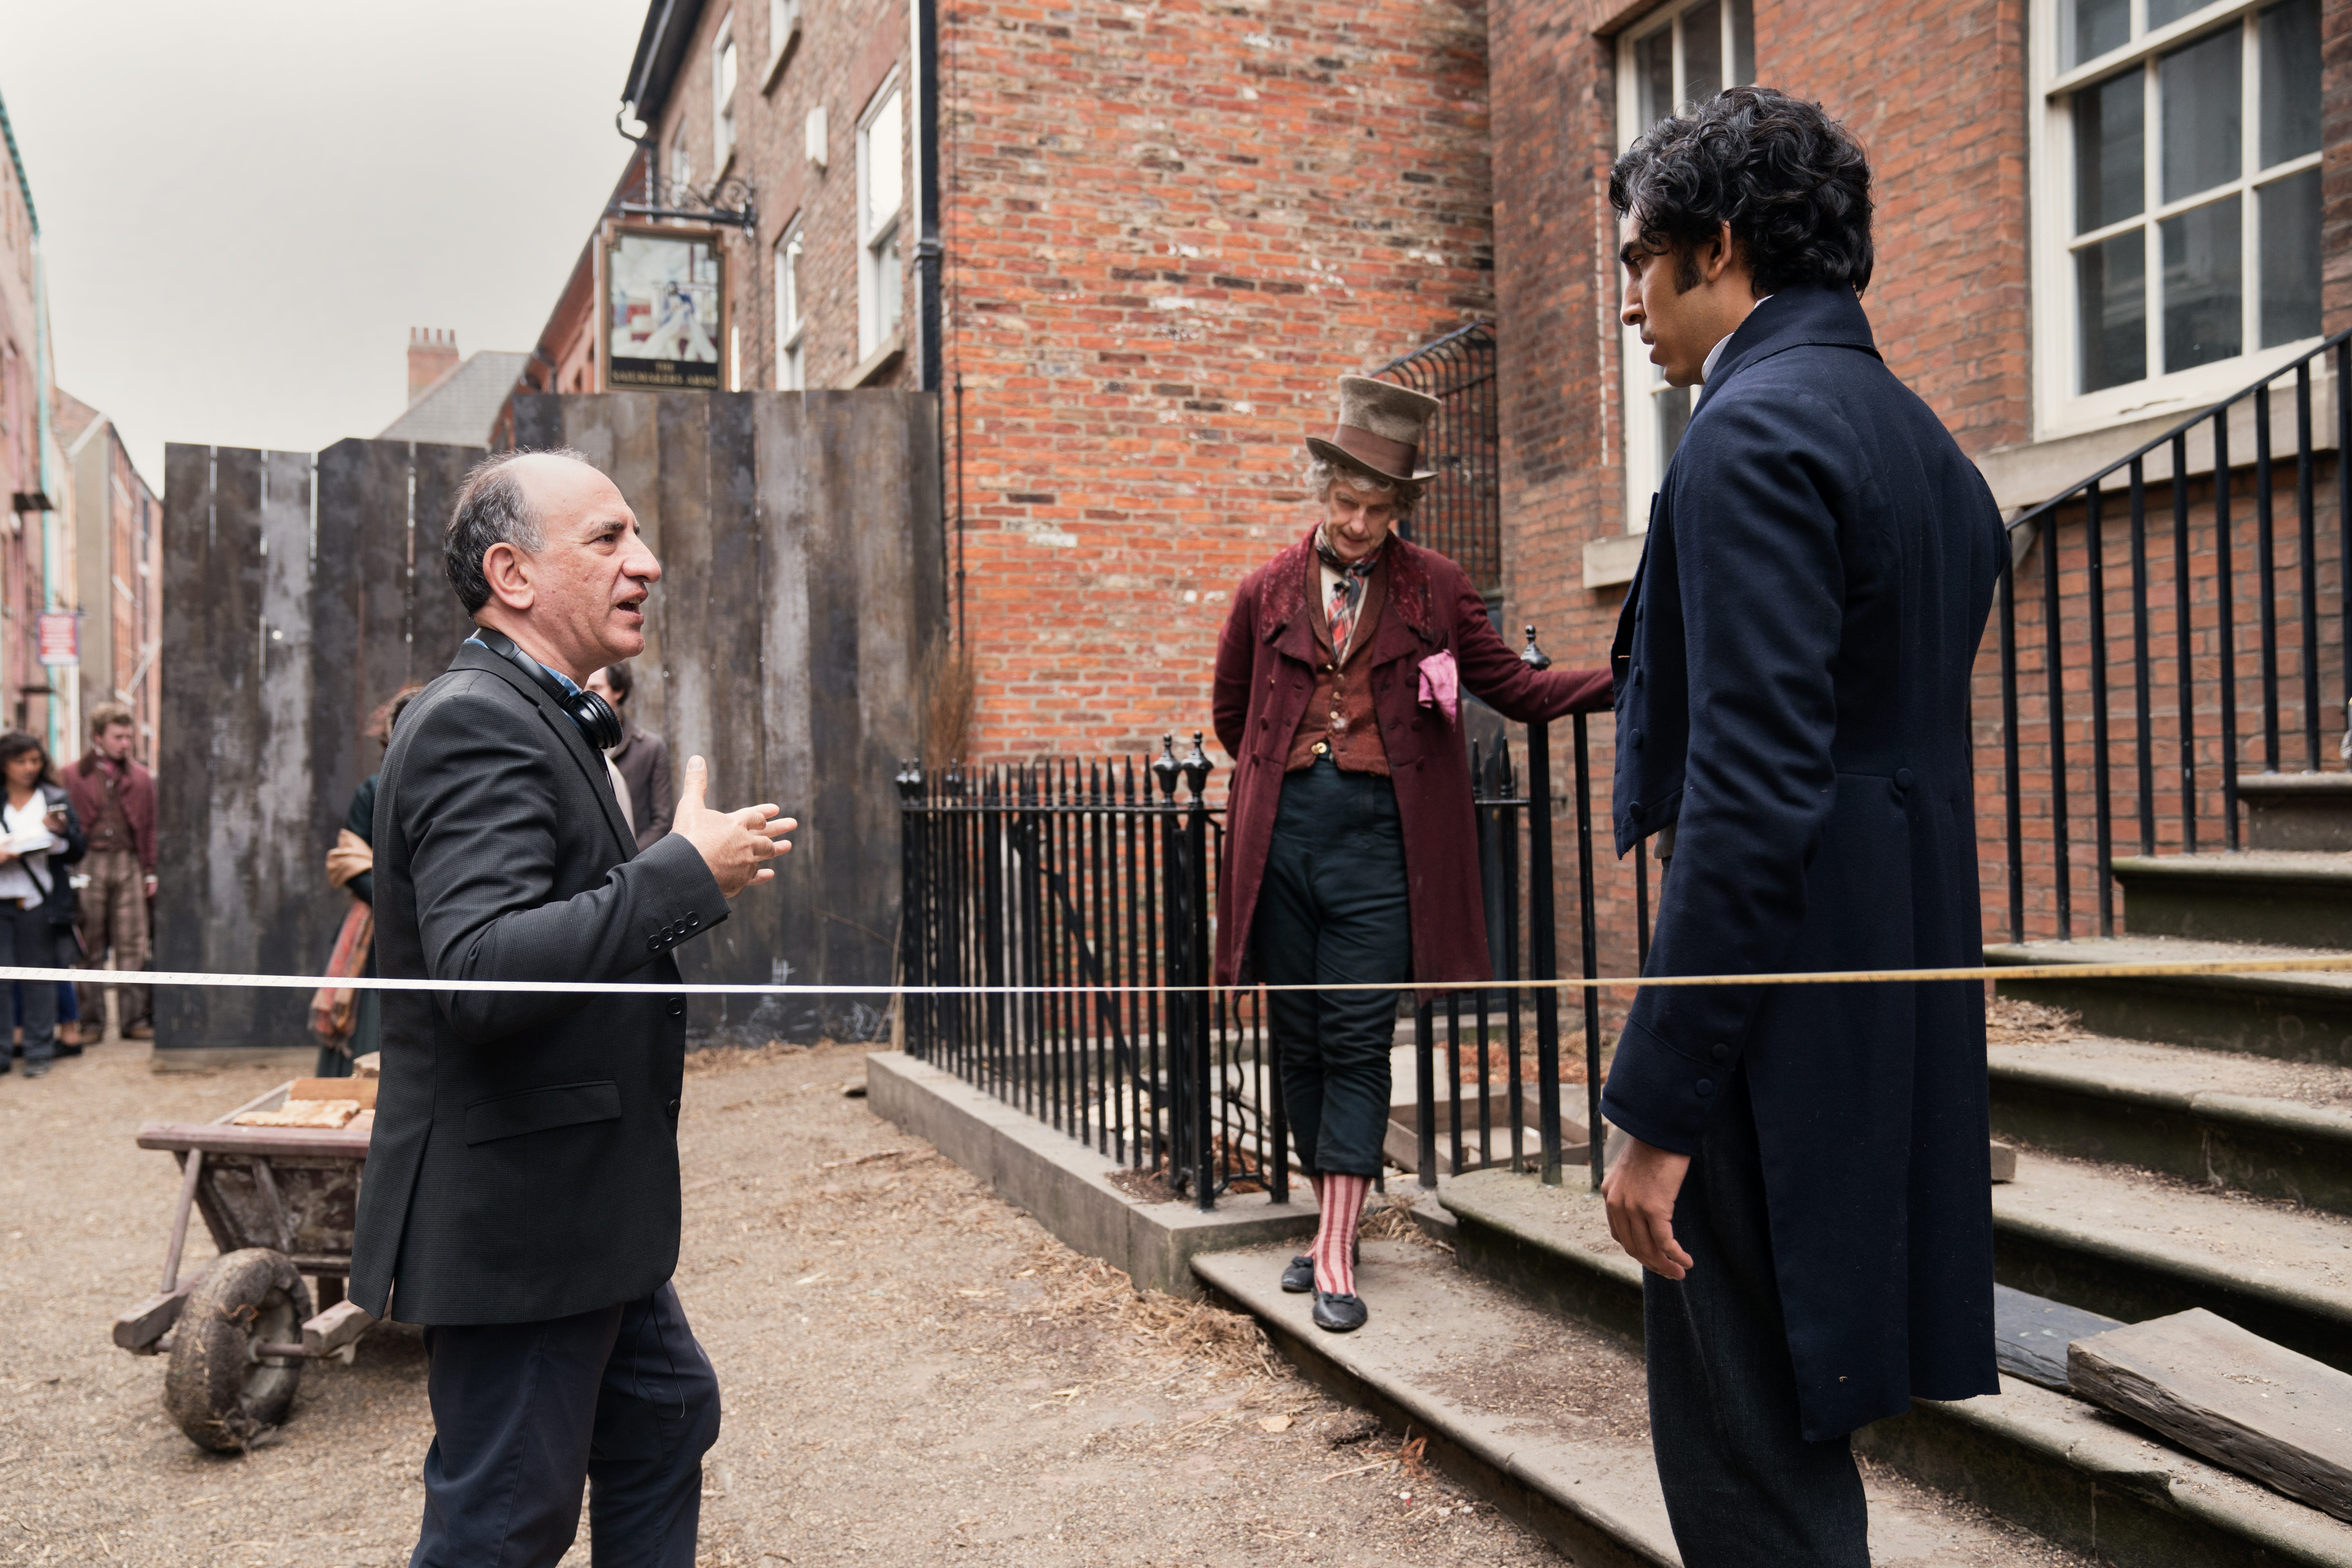 Filmmaker Armando Iannucci gets to celebrate light and serious sides of Charles Dickens   David Copperfield